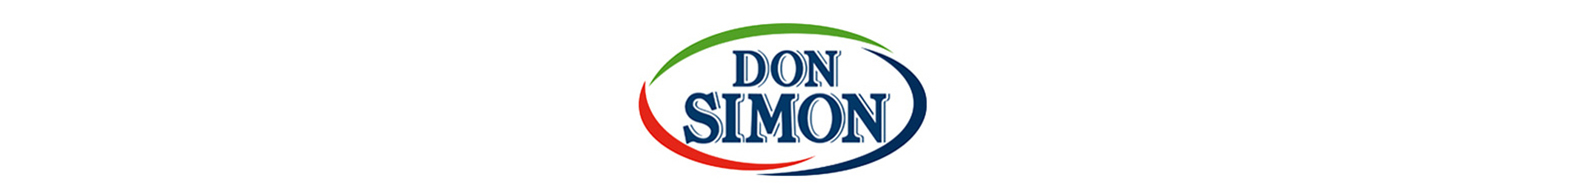 don simon Logo.jpg